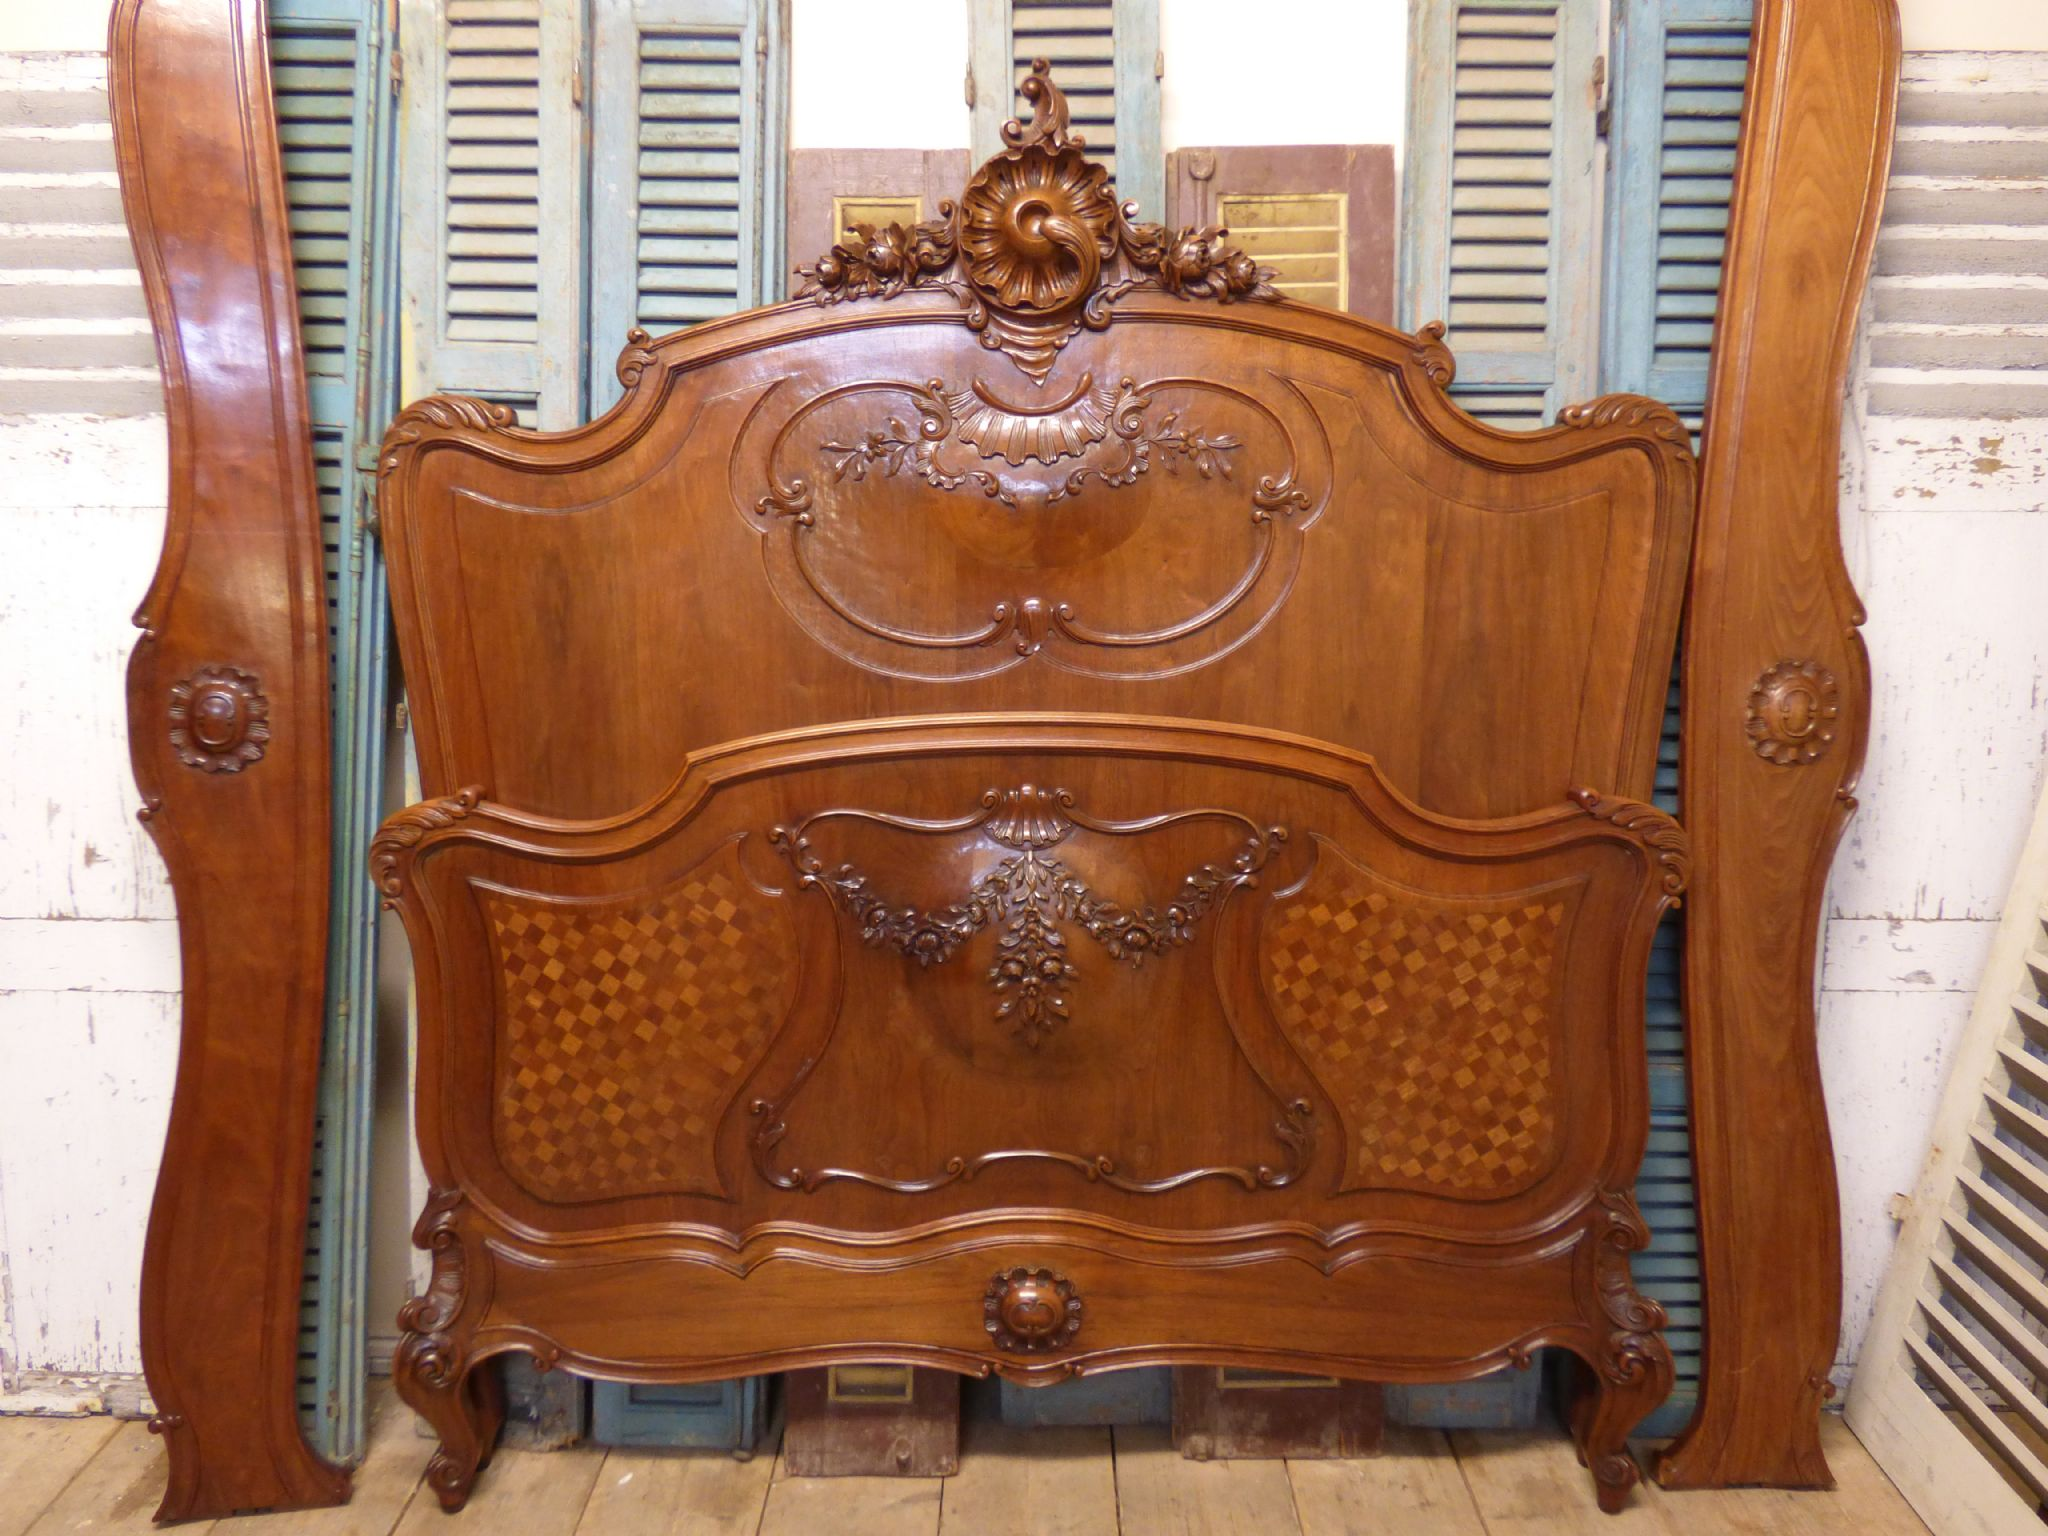 dc99c04d5719b Lovely Antique French King Size Bed - fd89 - SOLD